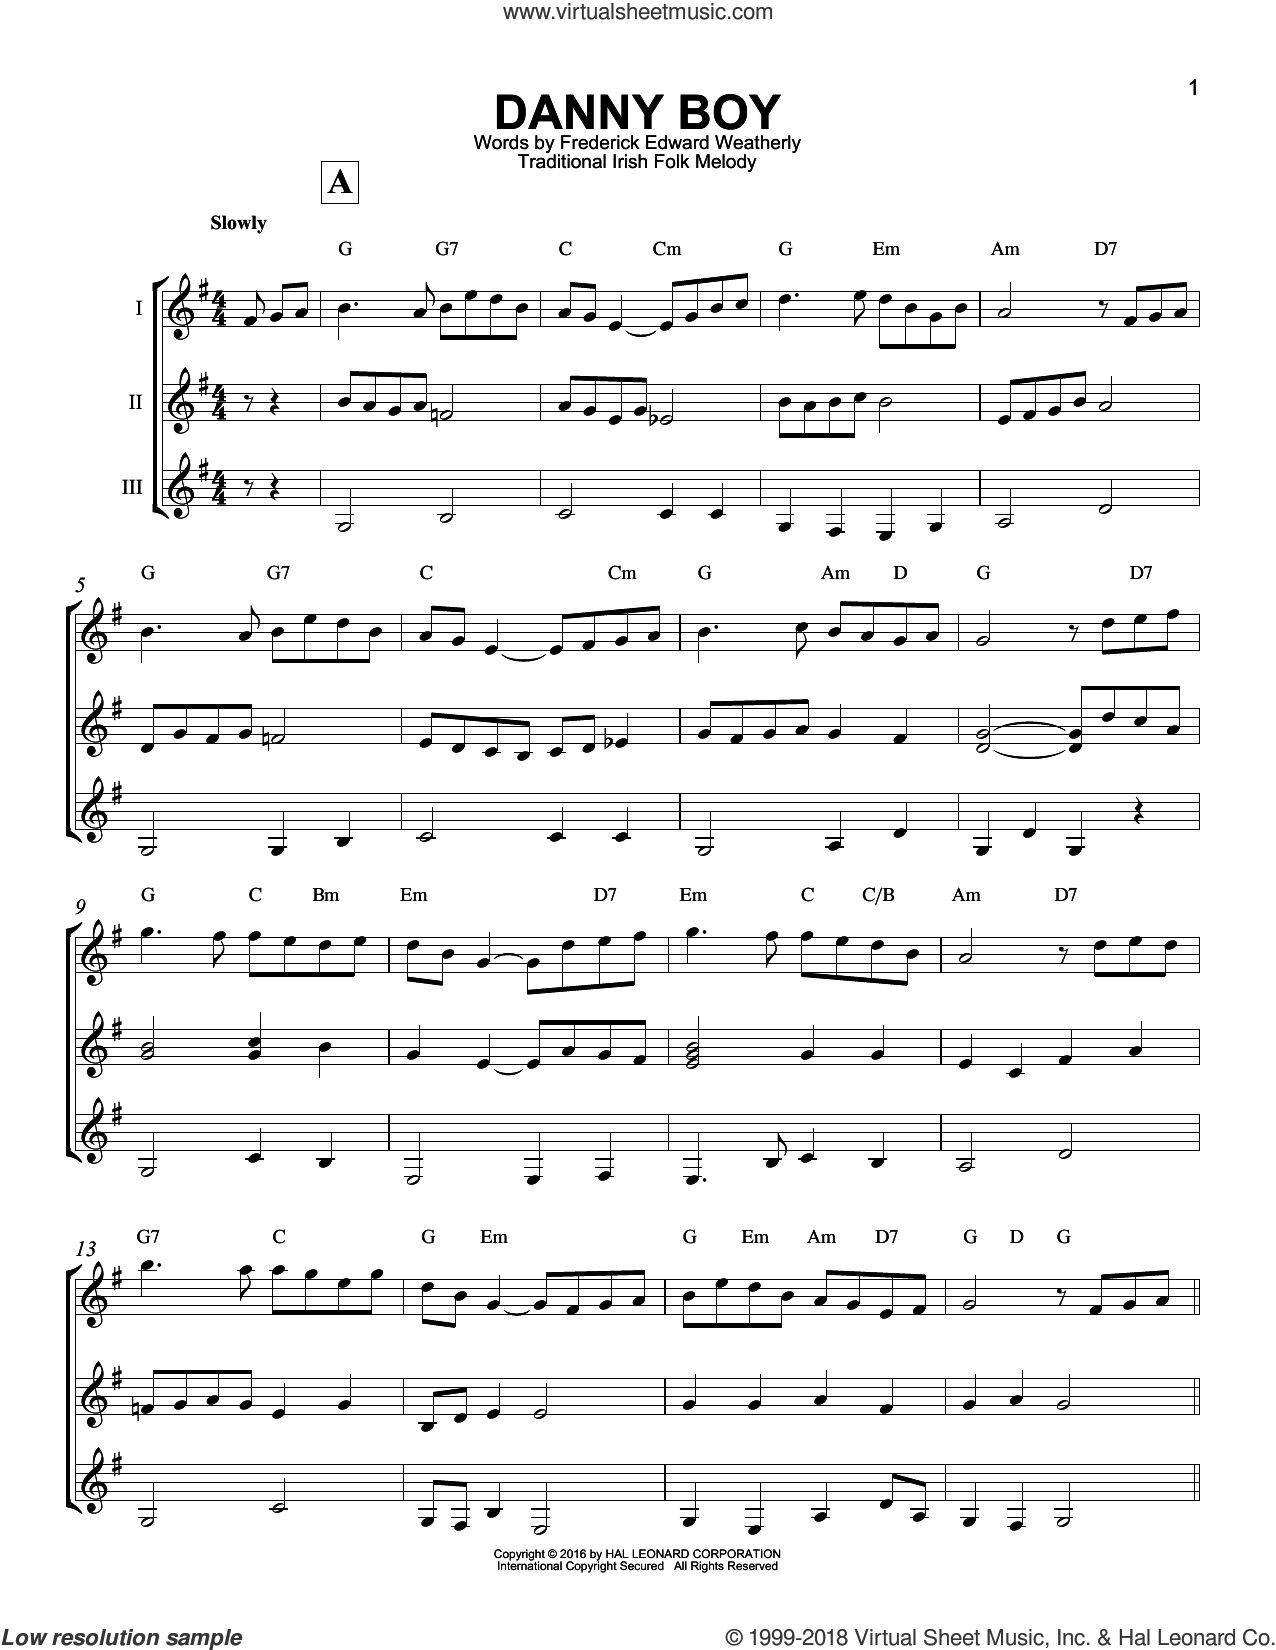 Danny Boy sheet music for guitar ensemble by Traditional Irish and Frederick Edward Weatherly, intermediate skill level